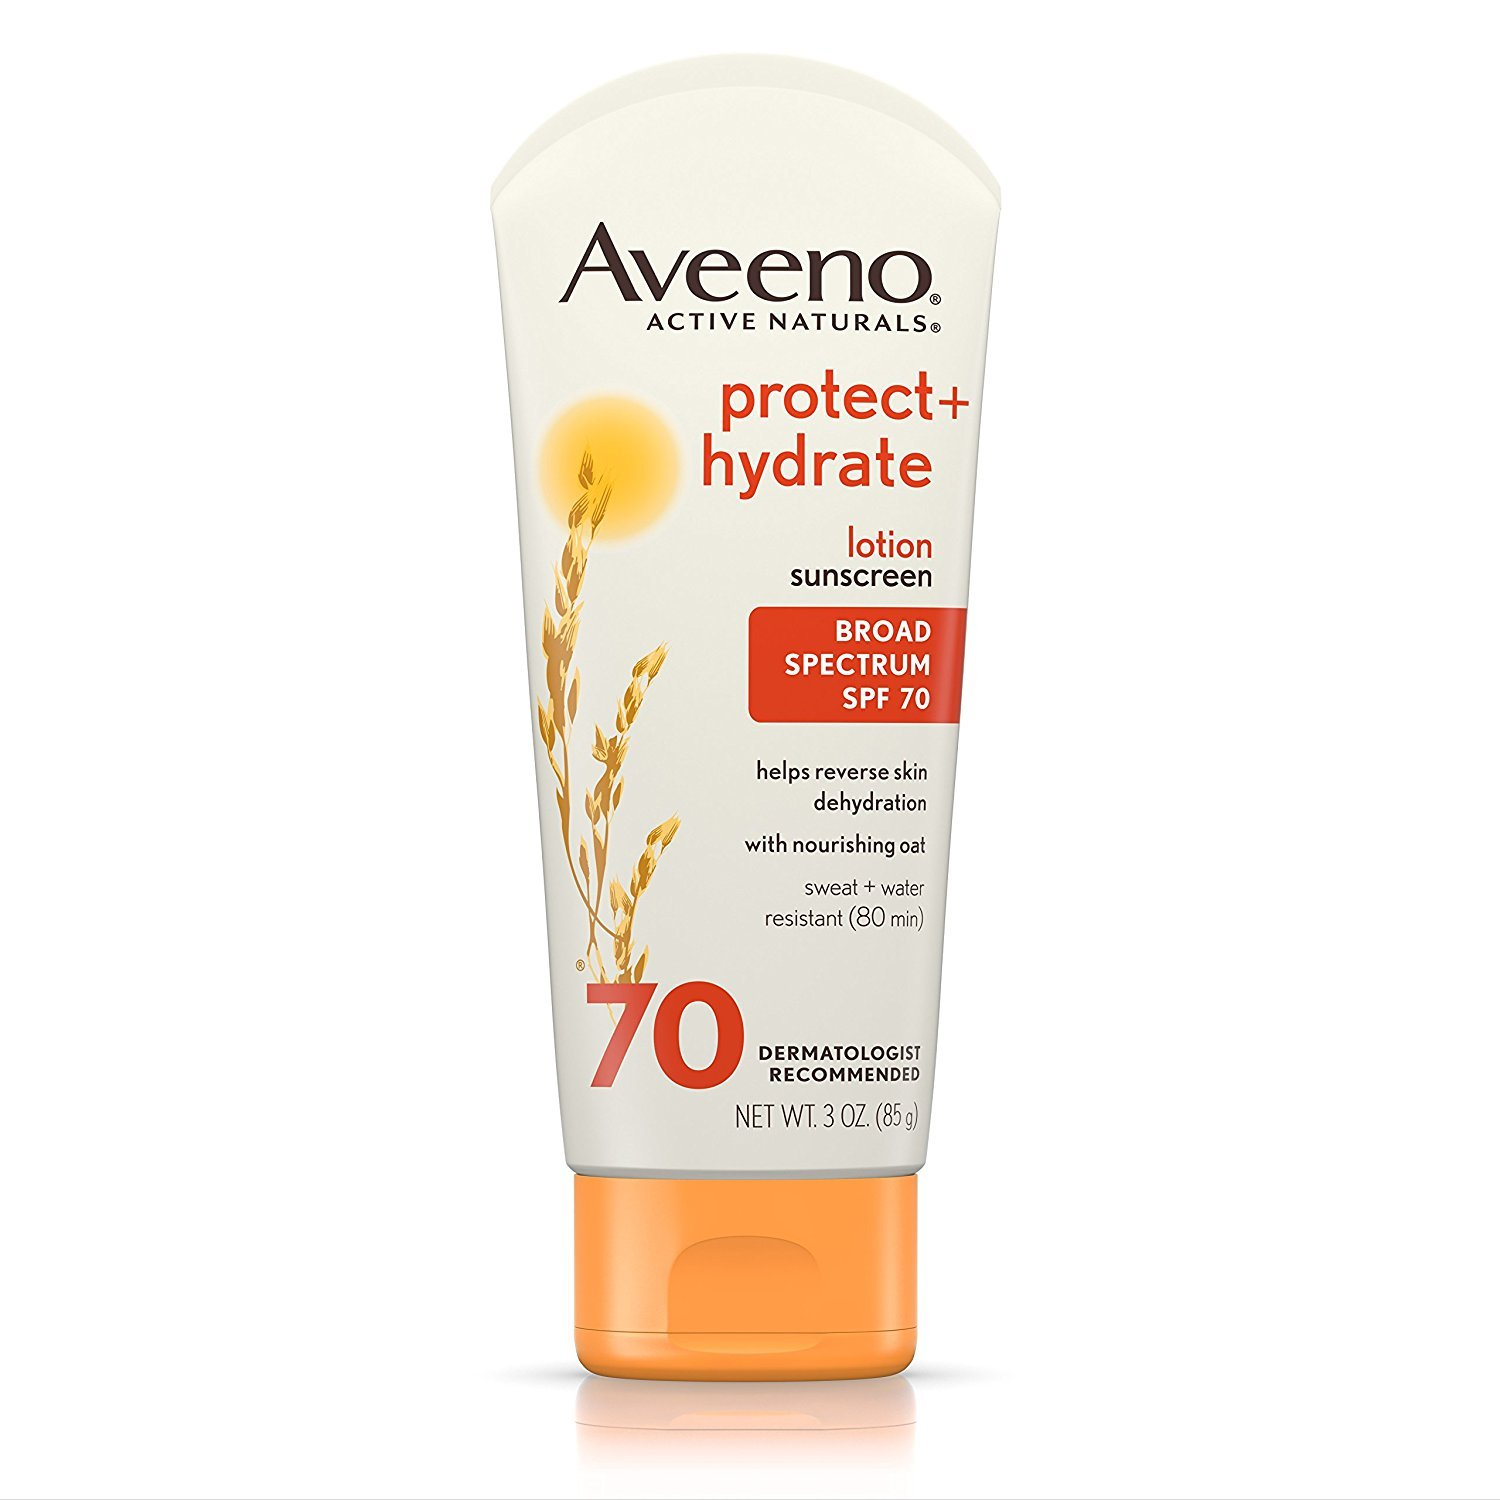 Aveeno Protect + Hydrate Moisturizing Sunscreen Lotion with Broad Spectrum SPF 70 & Antioxidant Oat, Oil-Free, Sweat- & Water-Resistant Sun Protection, Travel-Size, 3 oz (Pack of 2)